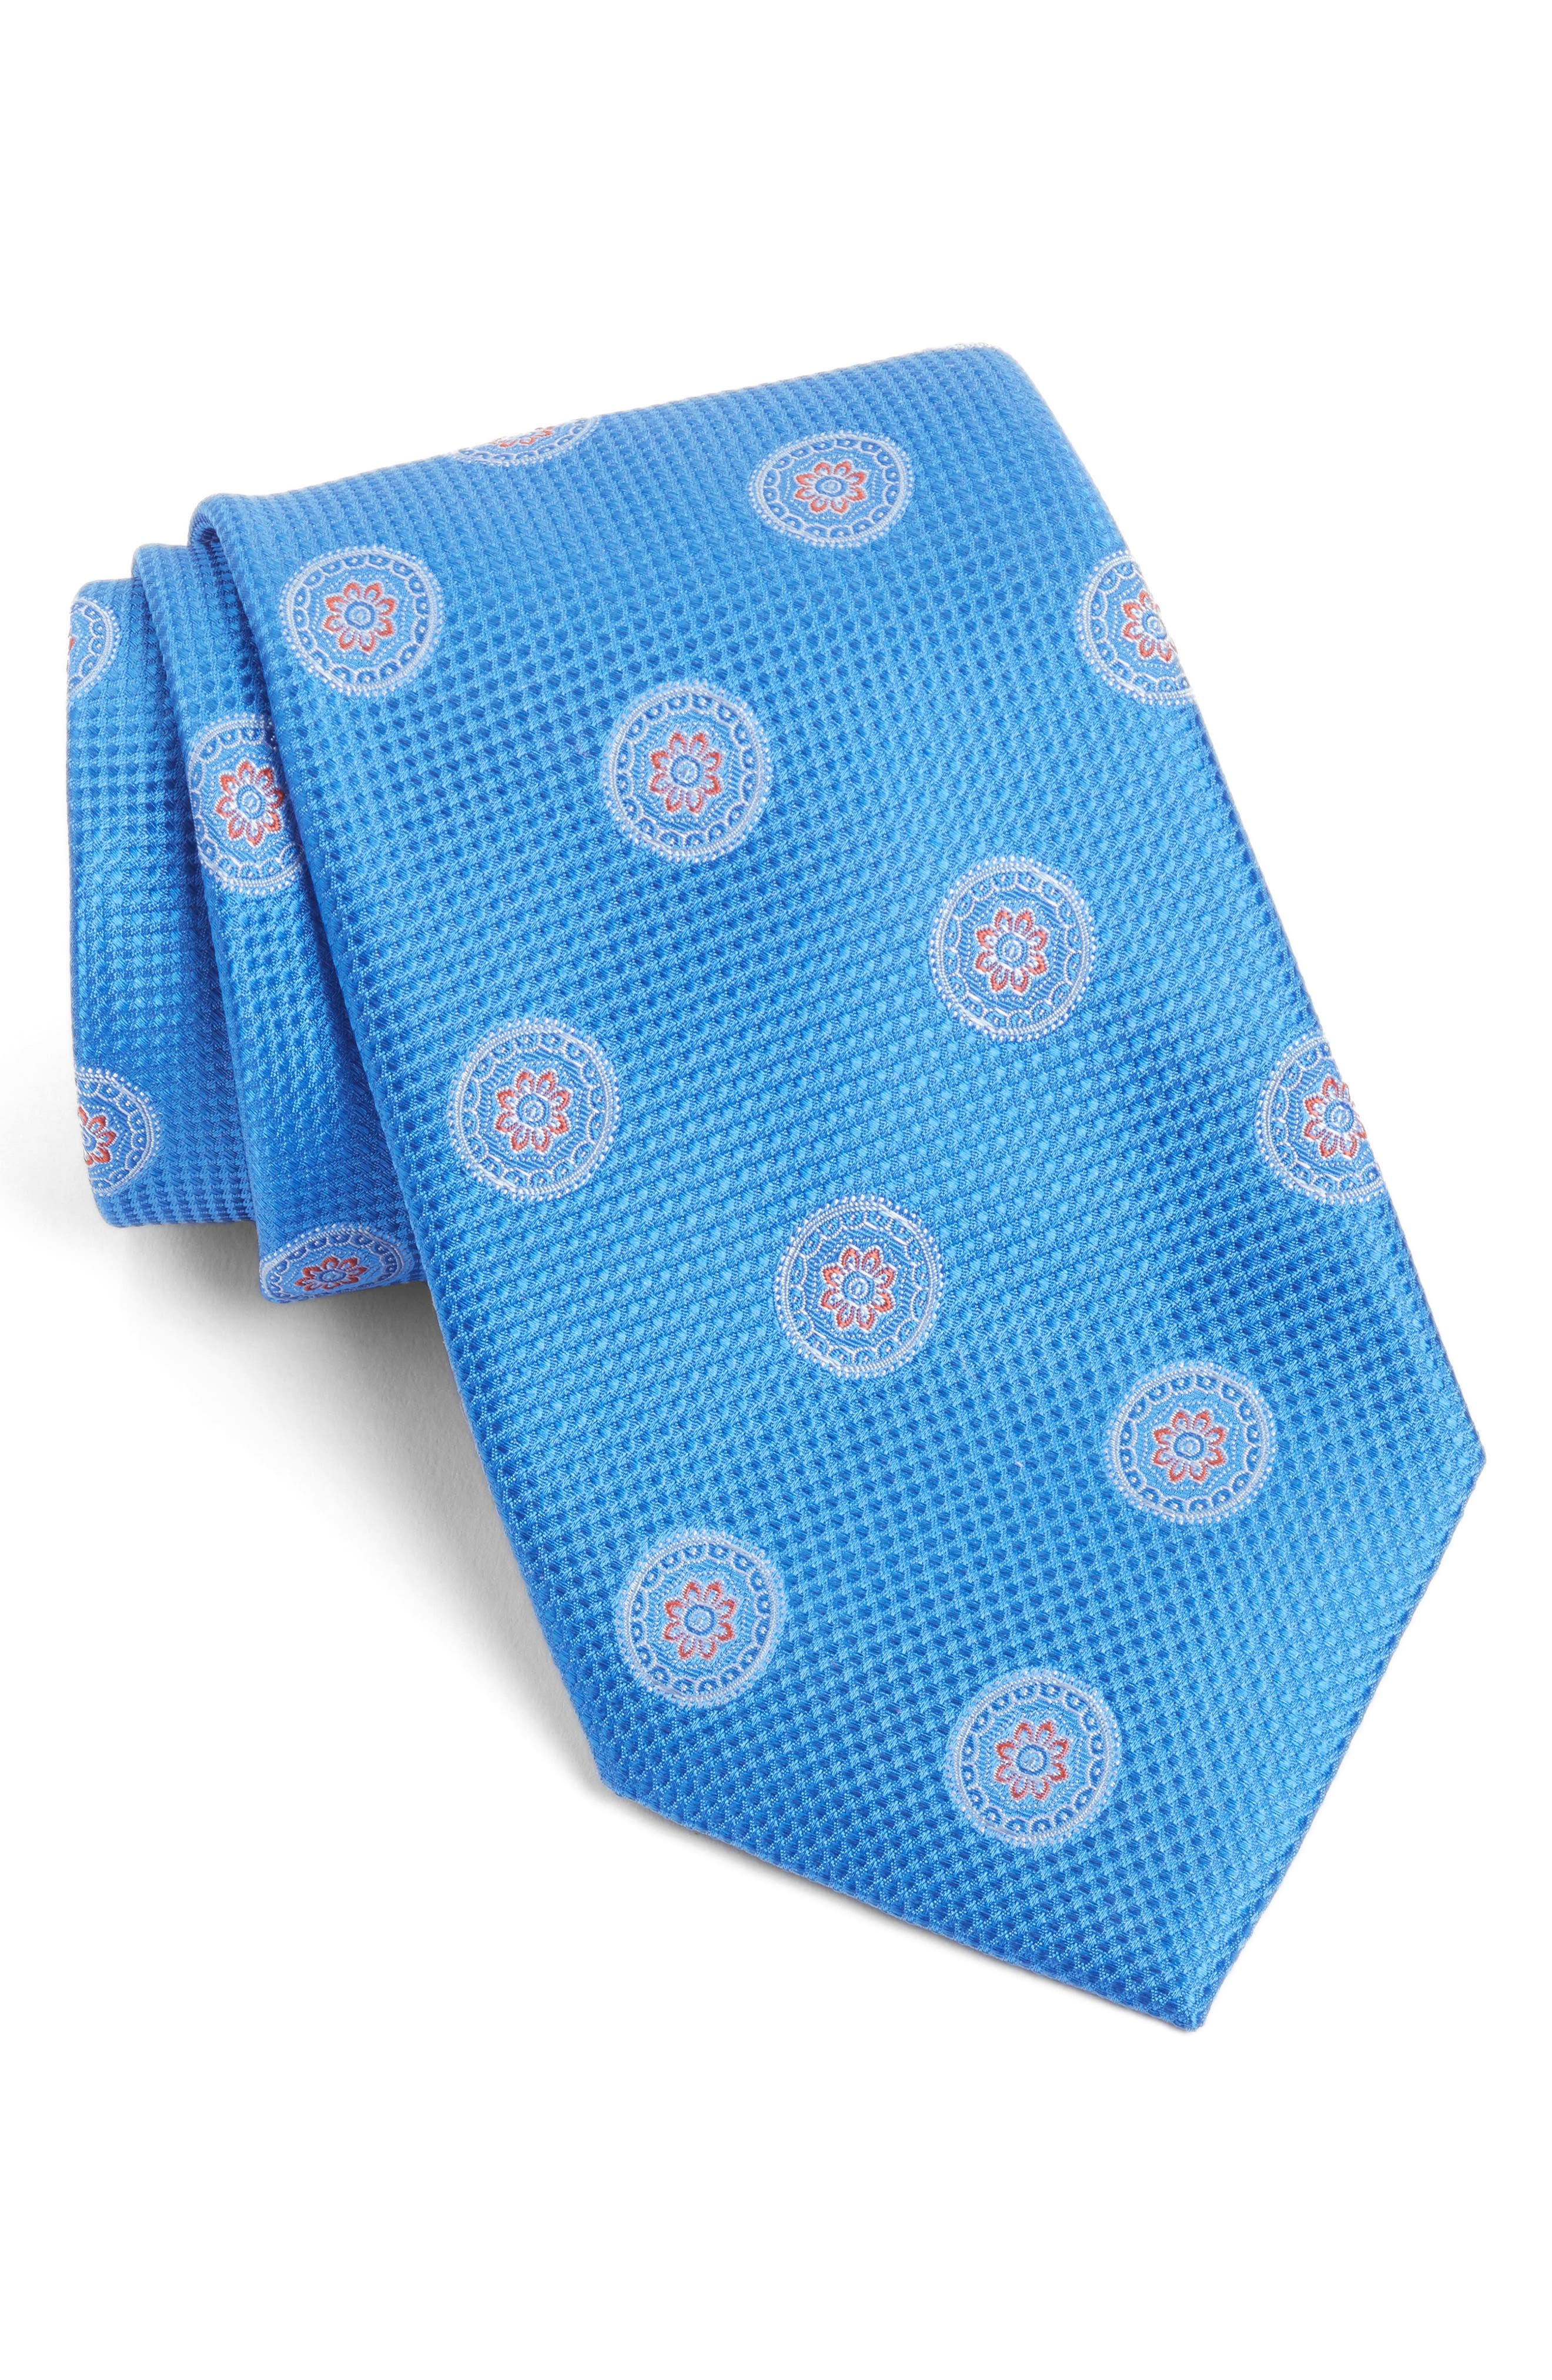 Nordstrom Men's Shop Circular Medallion Silk Tie (X-Long)